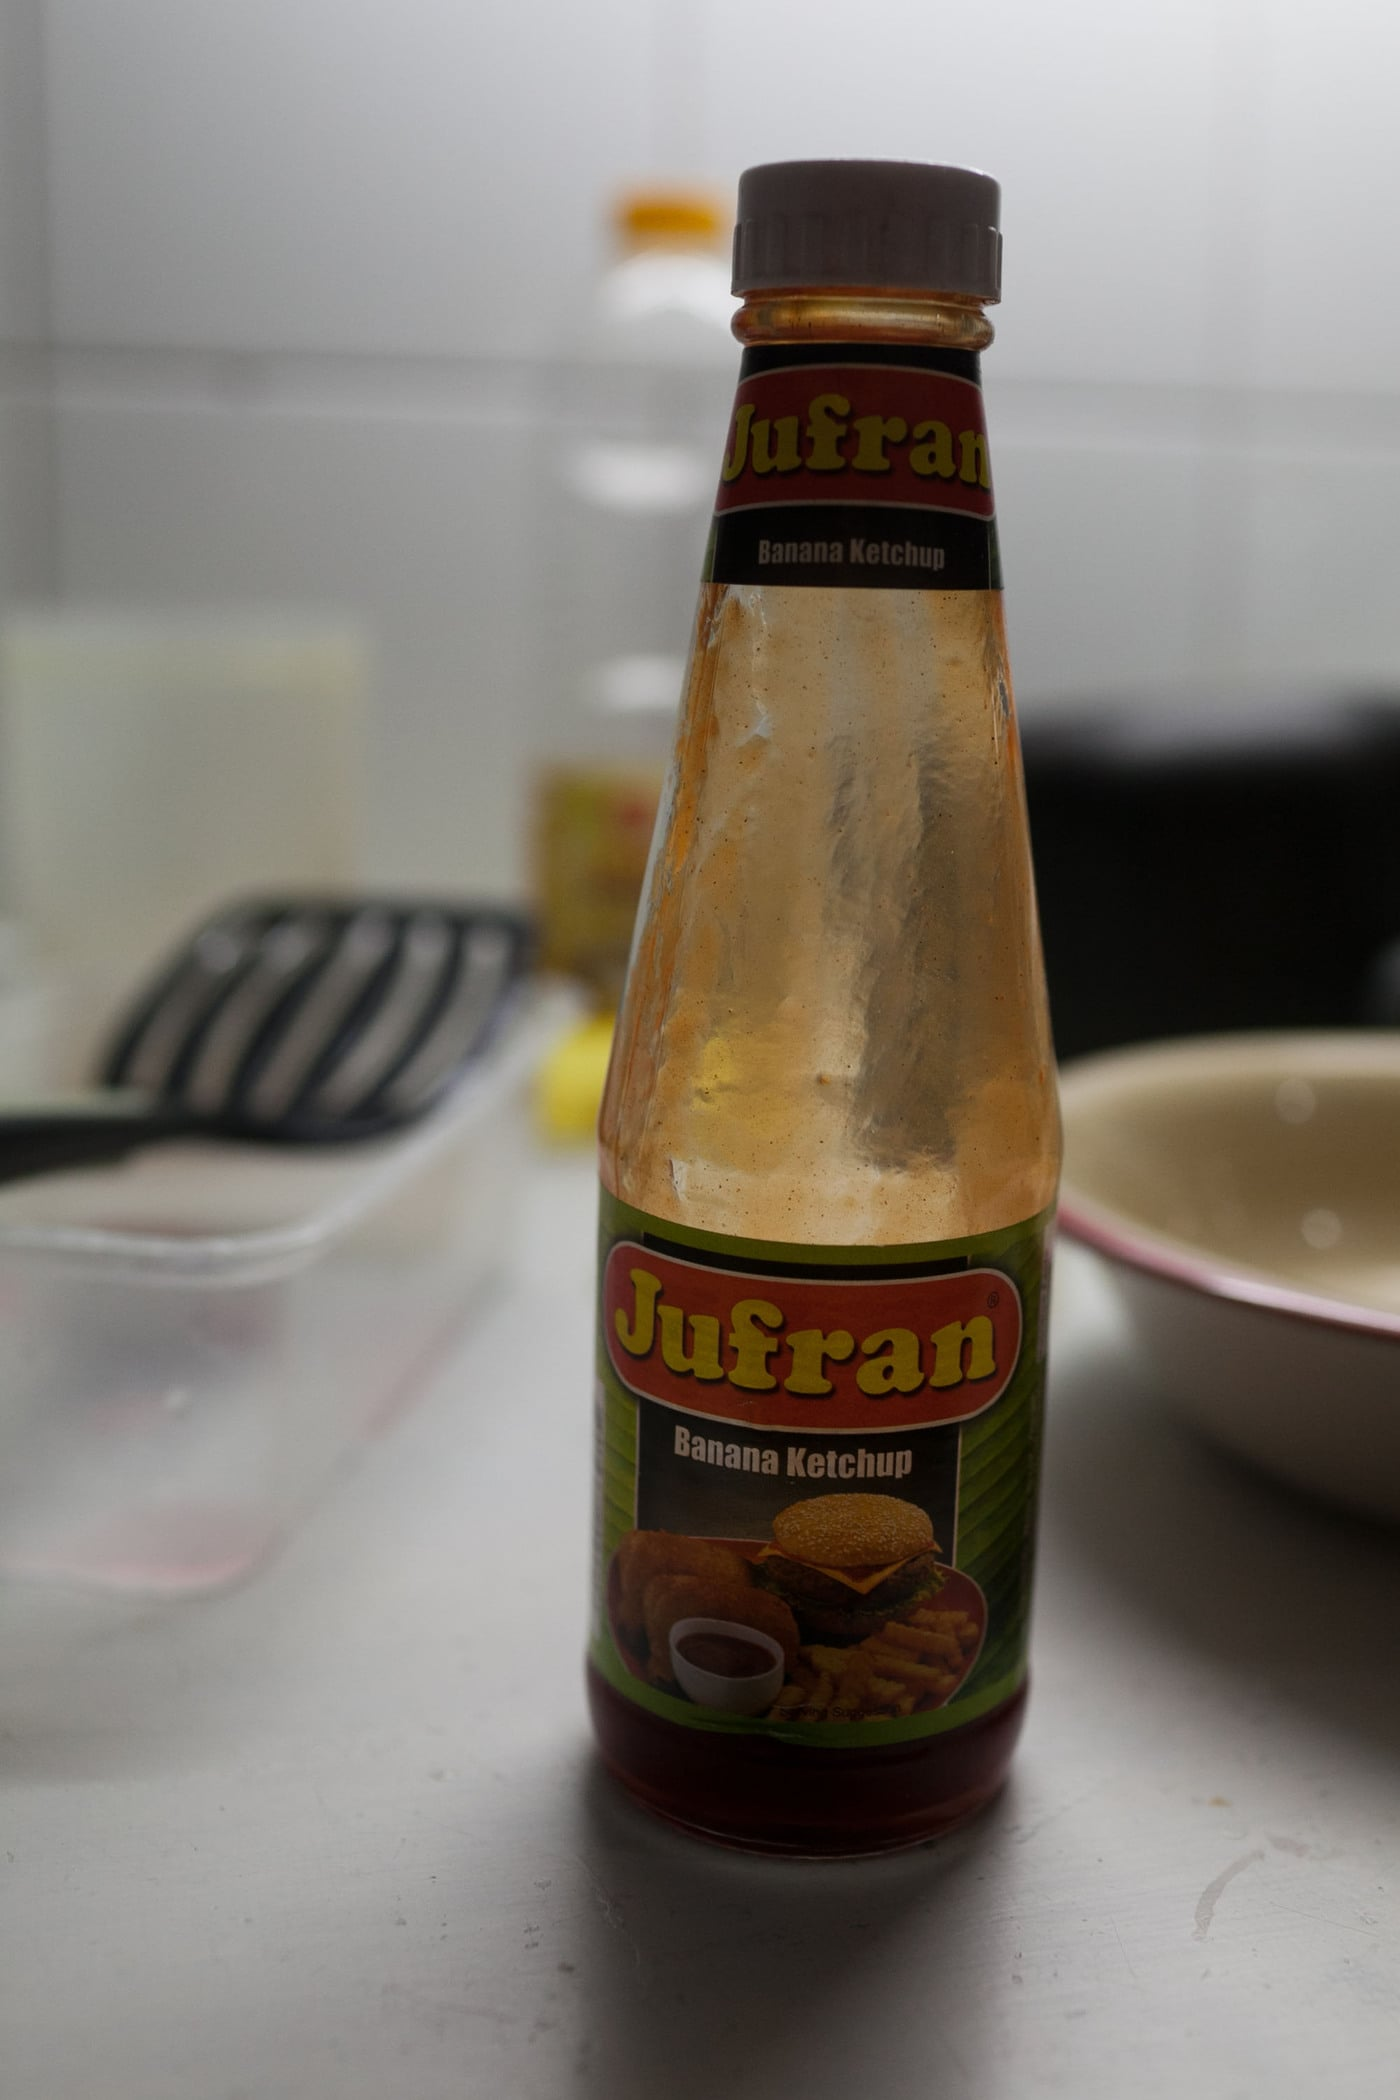 Banana ketchup from the Philippines.